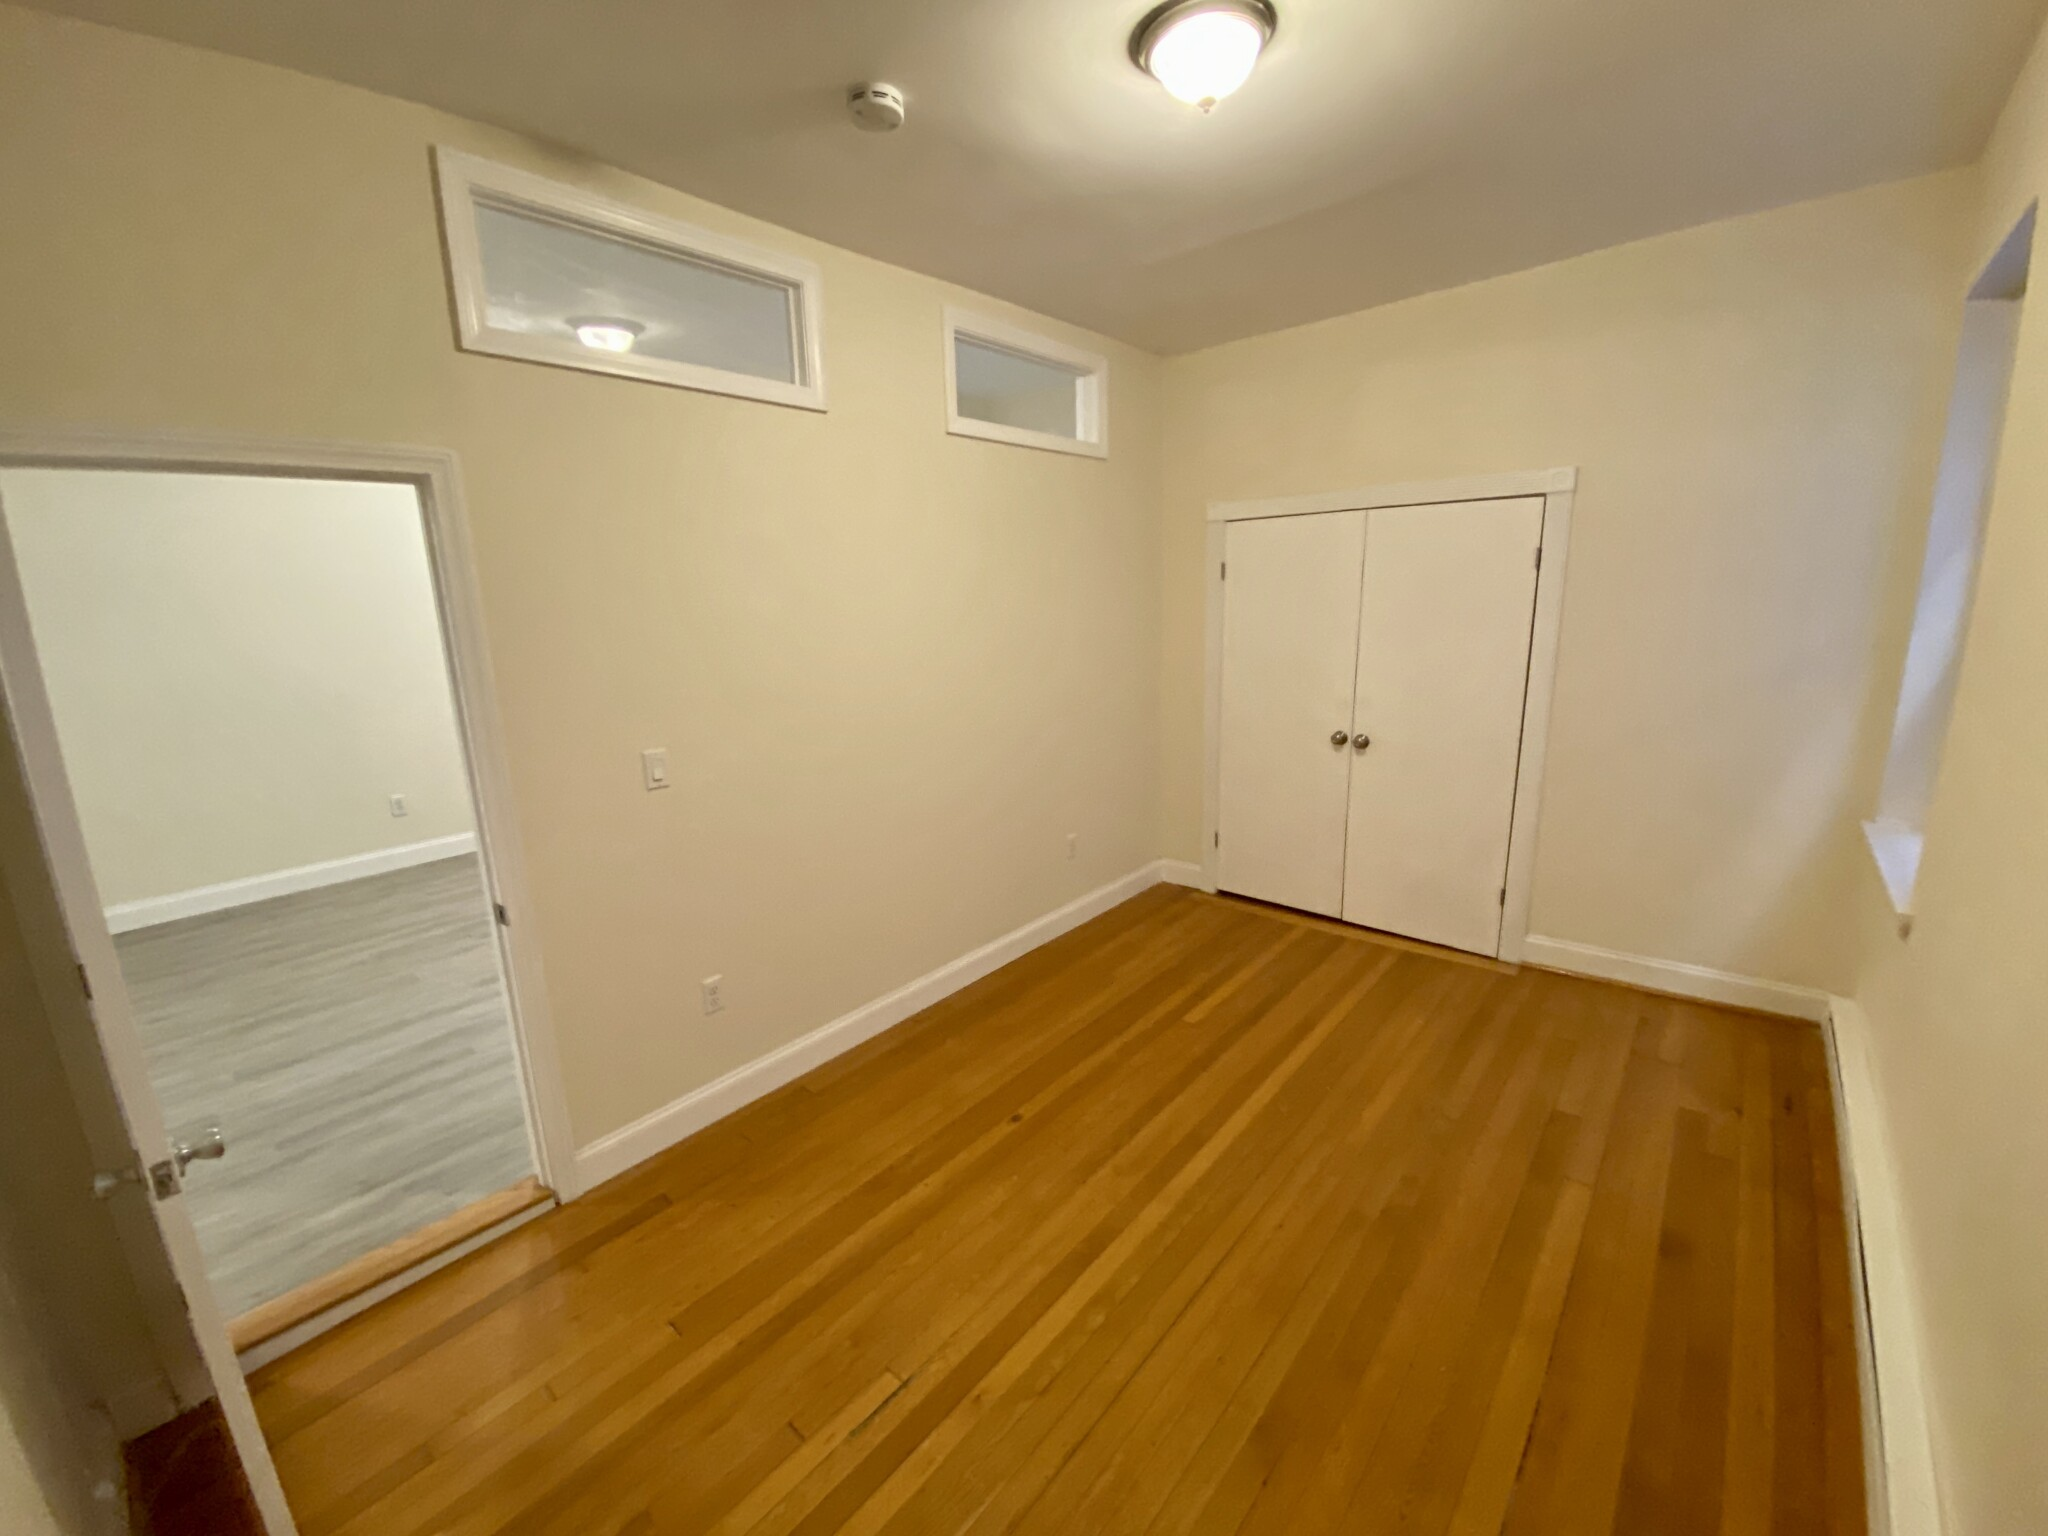 3 Beds, 1.5 Baths apartment in Boston for $4,000